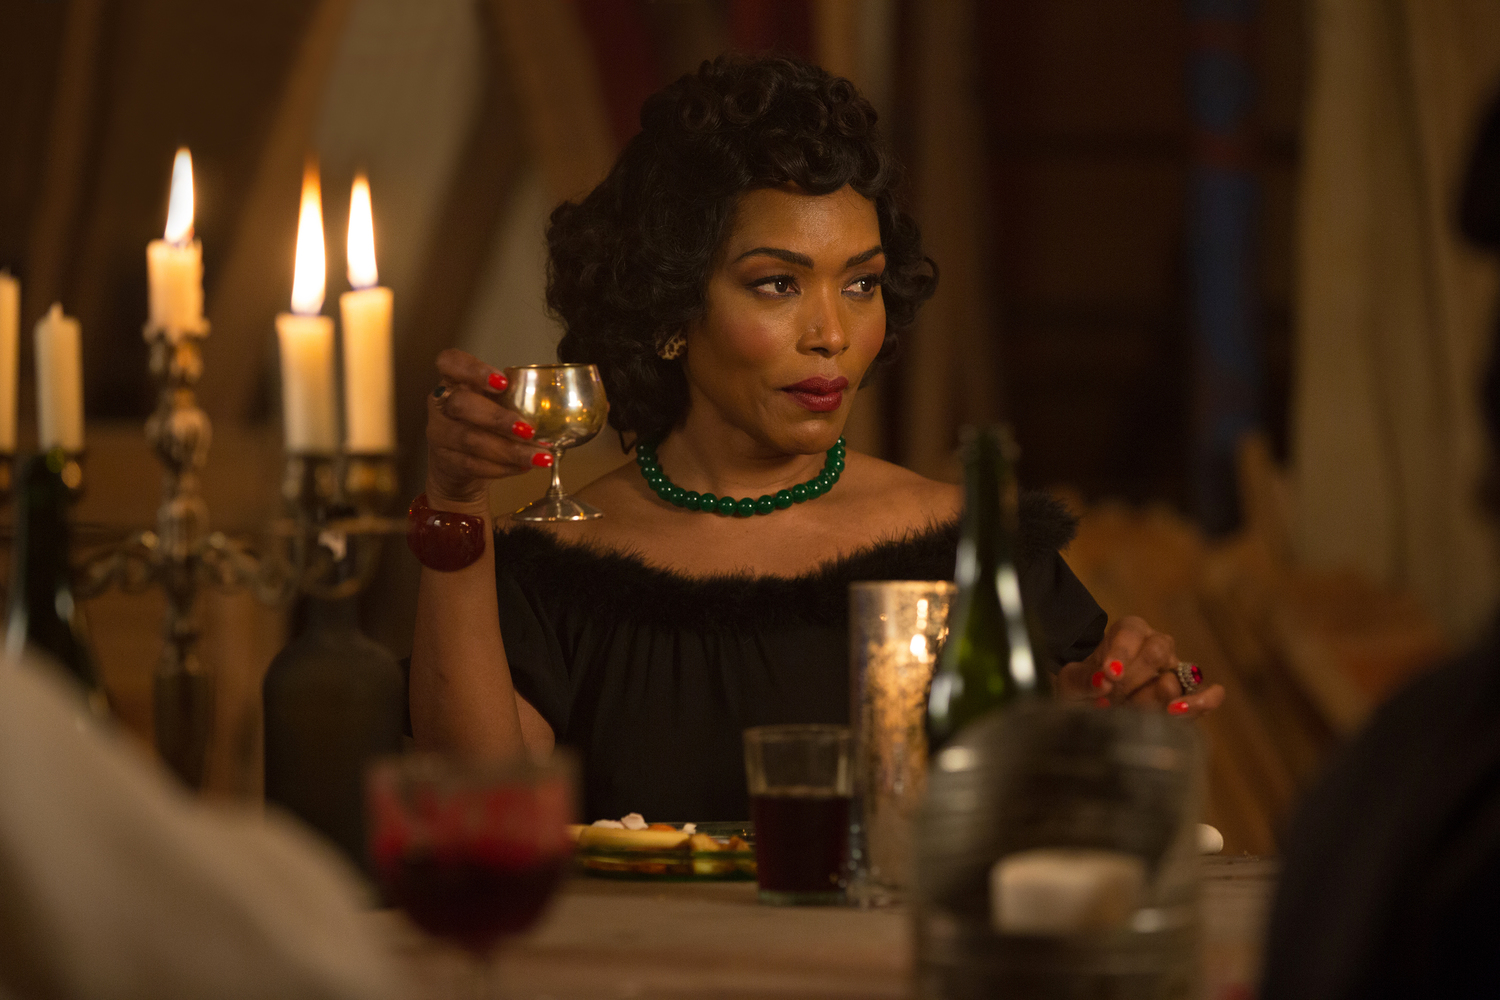 AHS 112514 0642 hires1 - American Horror Story: Freak Show 'Show Stoppers' Recap